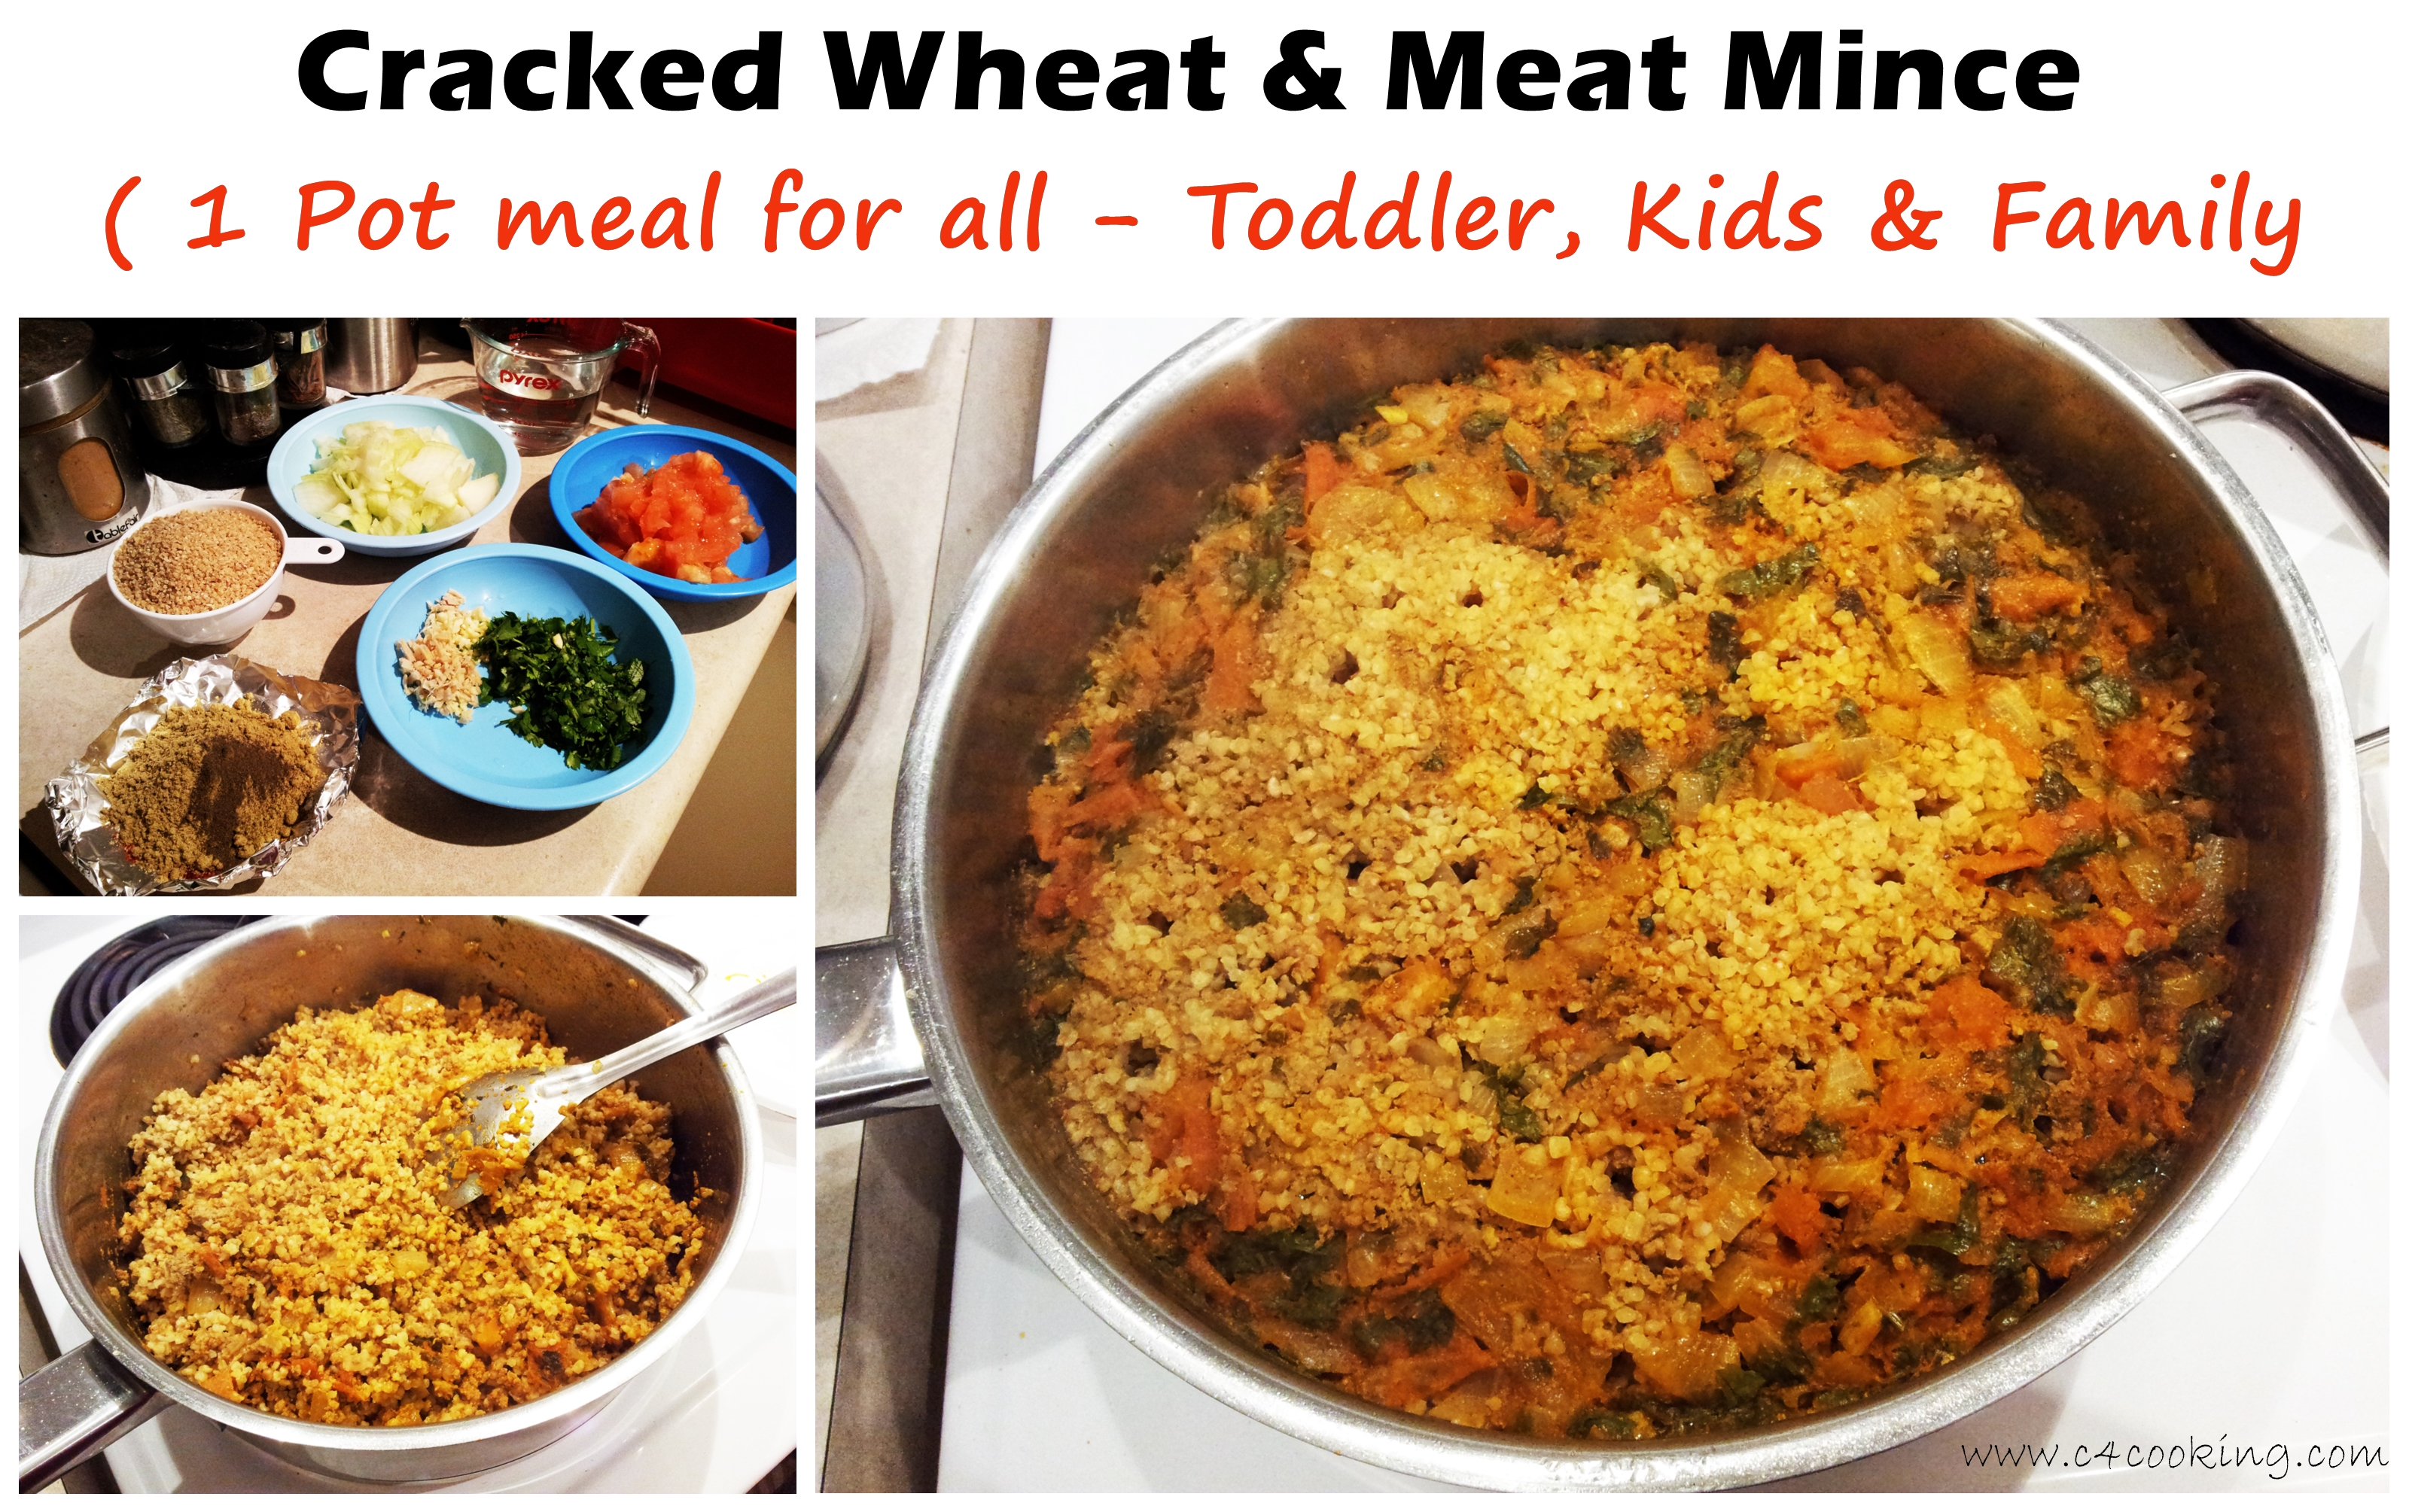 Wheat kheema , cracked wheat meat mince toddler family meal